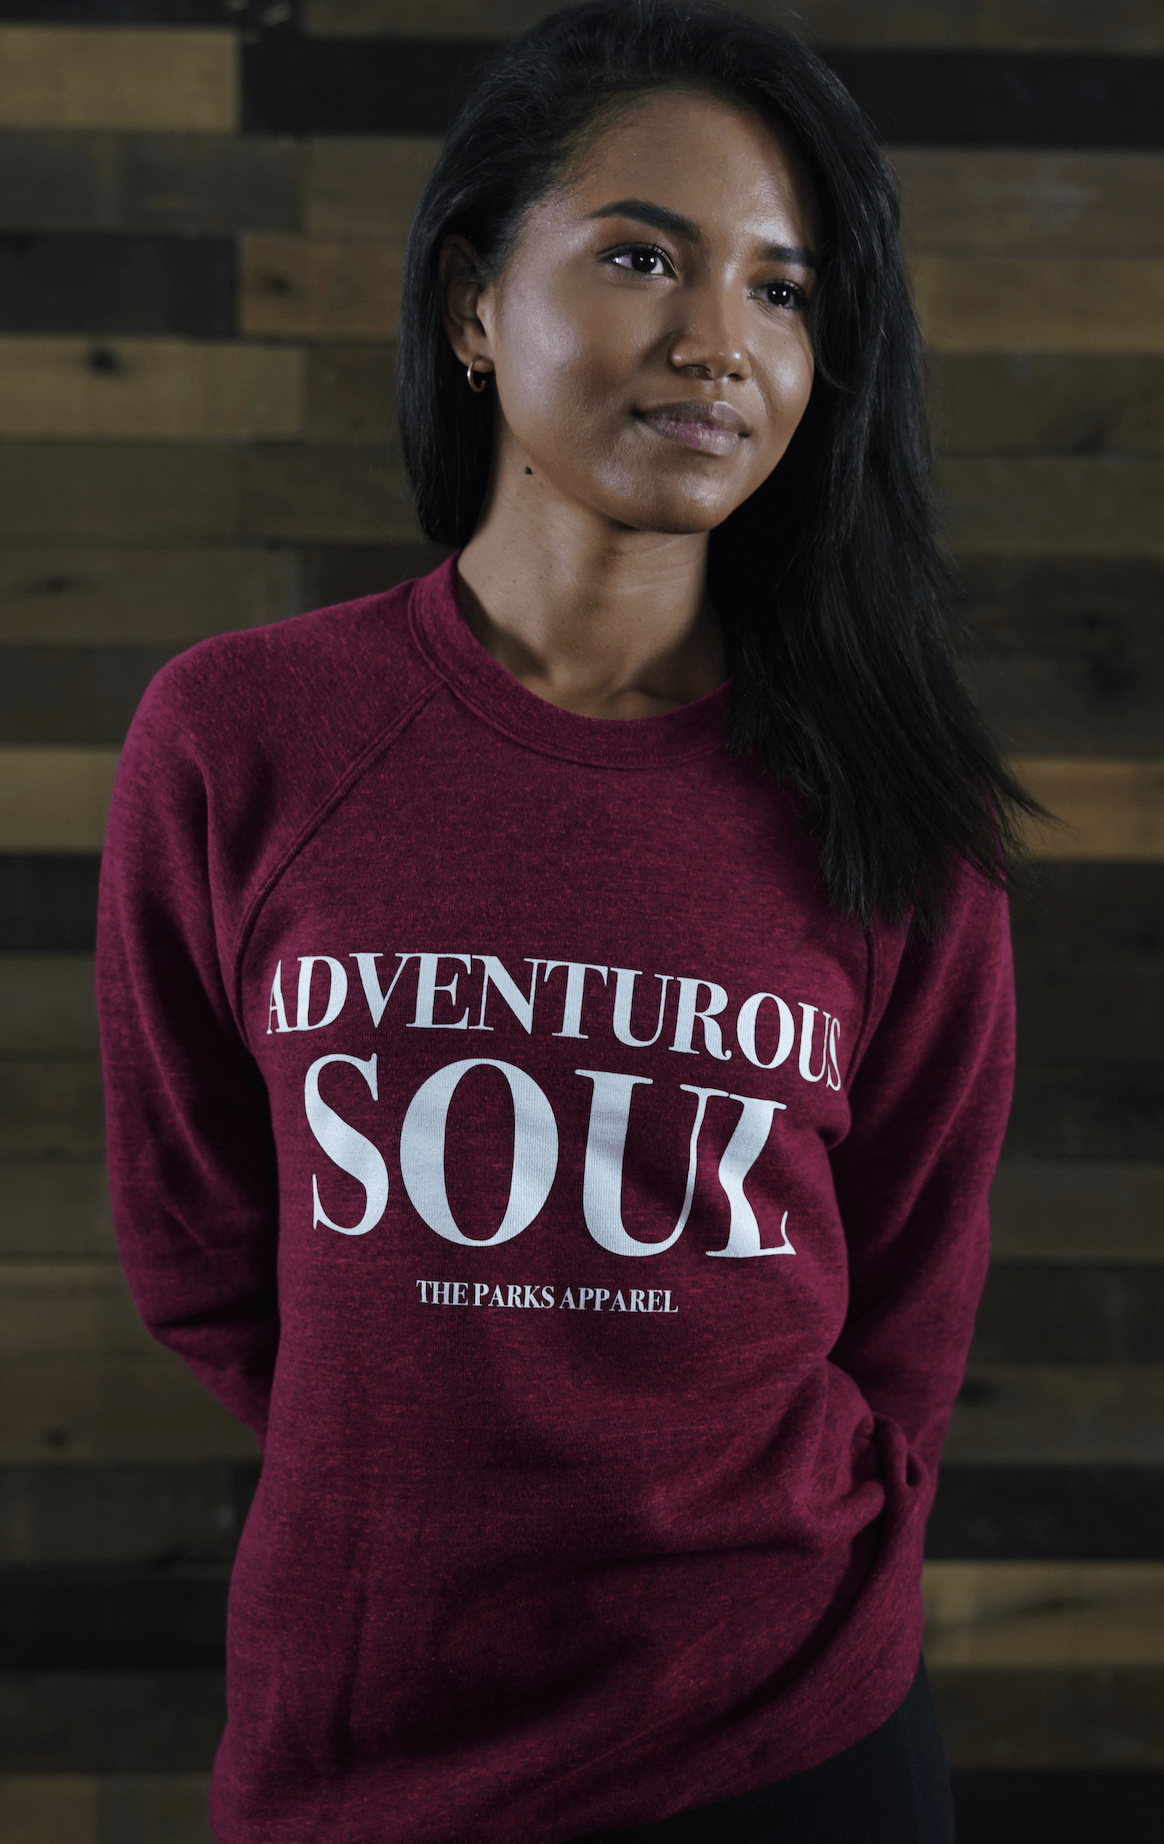 Red Adventurous Soul Crewneck - The Parks Apparel